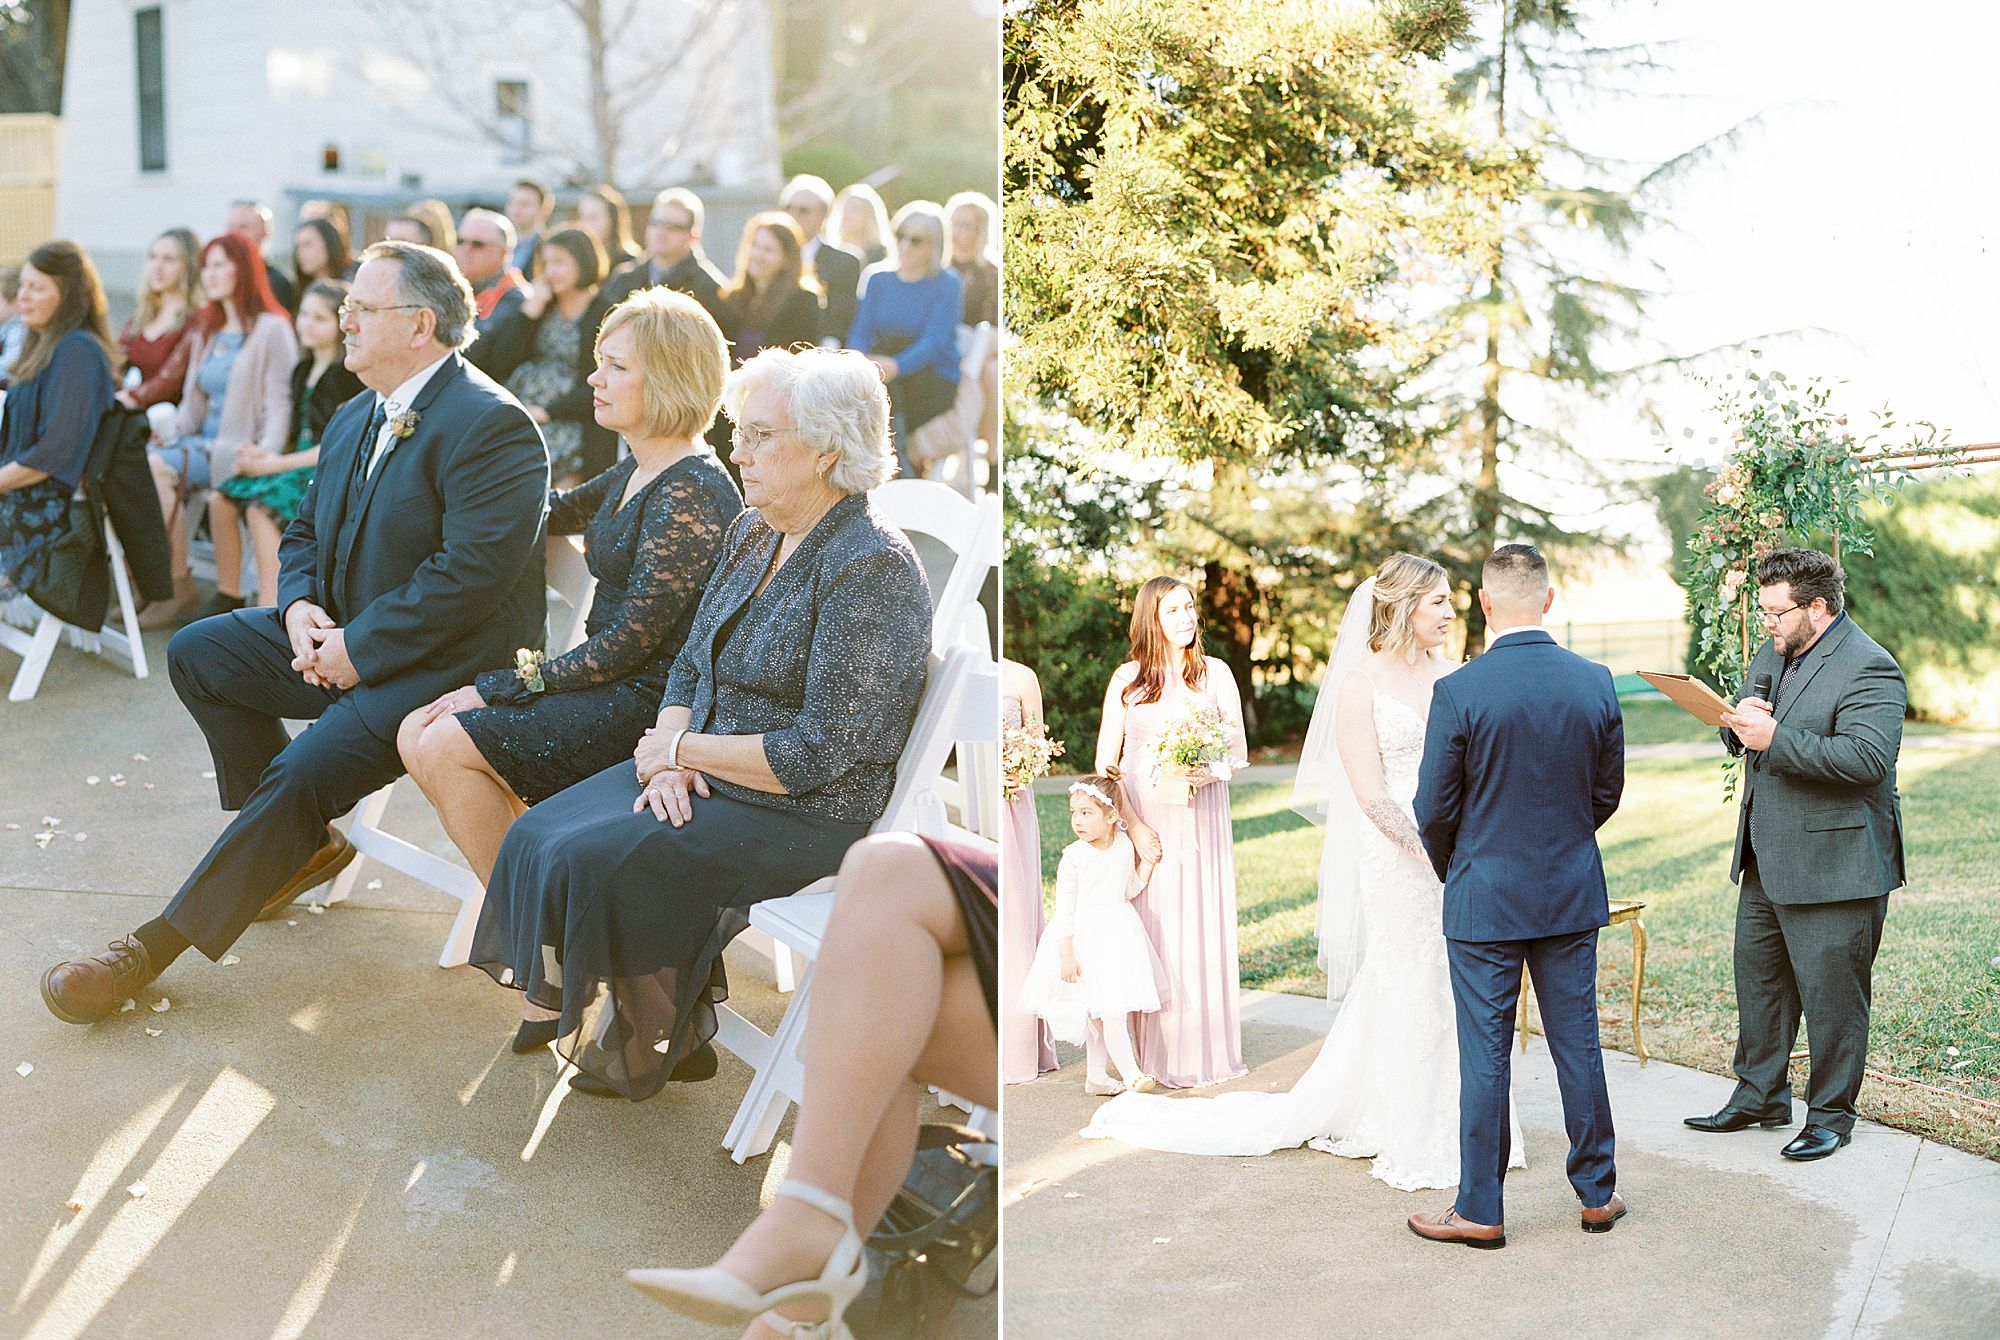 Inn at Park Winters Wedding - Lindsay and Shane - Ashley Baumgartner - Park Winters Wedding Photographer - Sacramento Wedding Photographer_0058.jpg